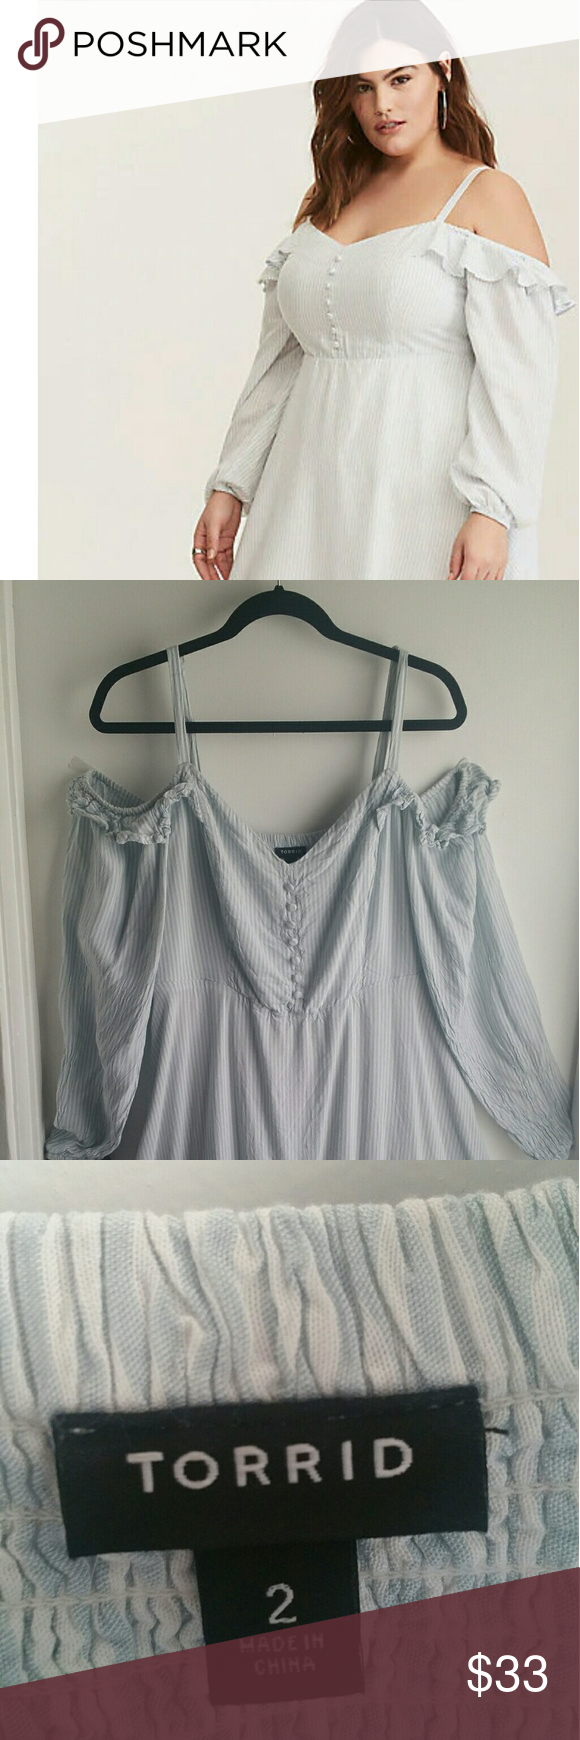 aa75e9ab6ce Blue and white stripe cold shoulder challis dress The perfect dress for  summer! Long airy